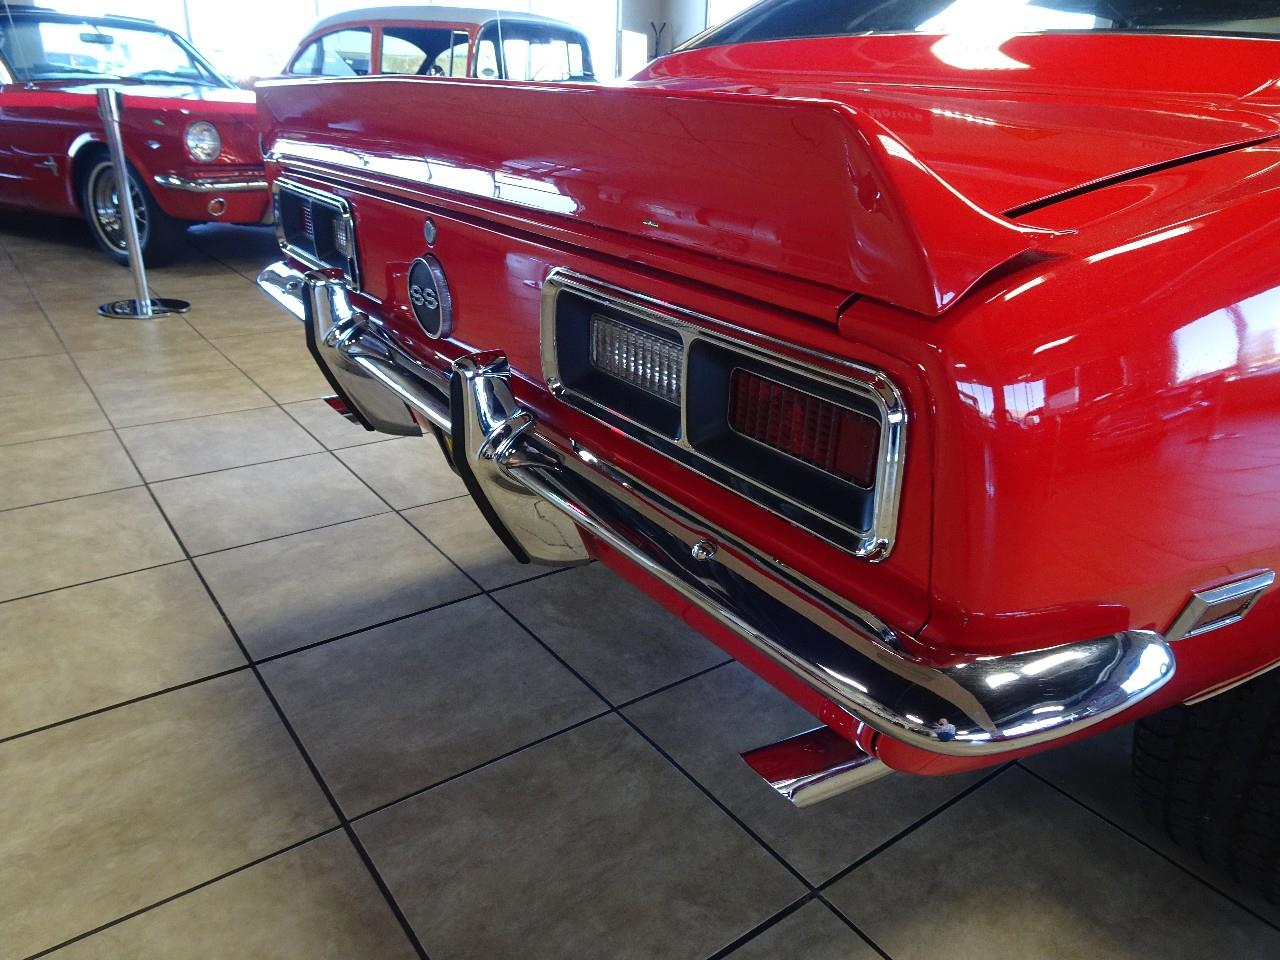 Large Picture of Classic 1968 Camaro SS located in De Witt Iowa - $32,997.00 Offered by Thiel Motor Sales Inc. - P3YL